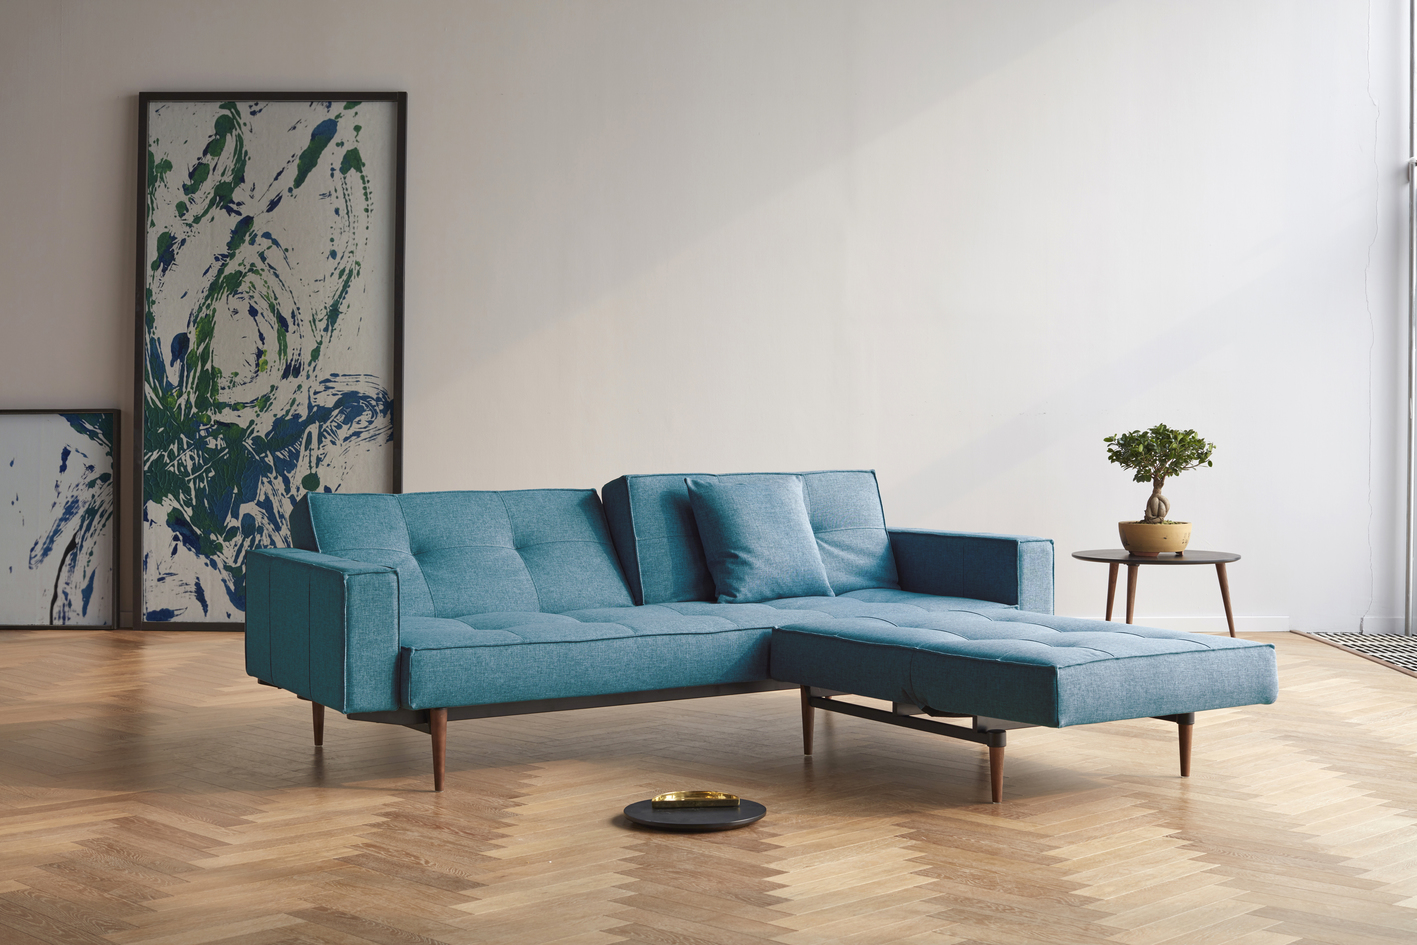 Chill Sleeper Sofa with Dark Wood Legs and Fabric Arms in Mixed Dance Aqua Petril Color